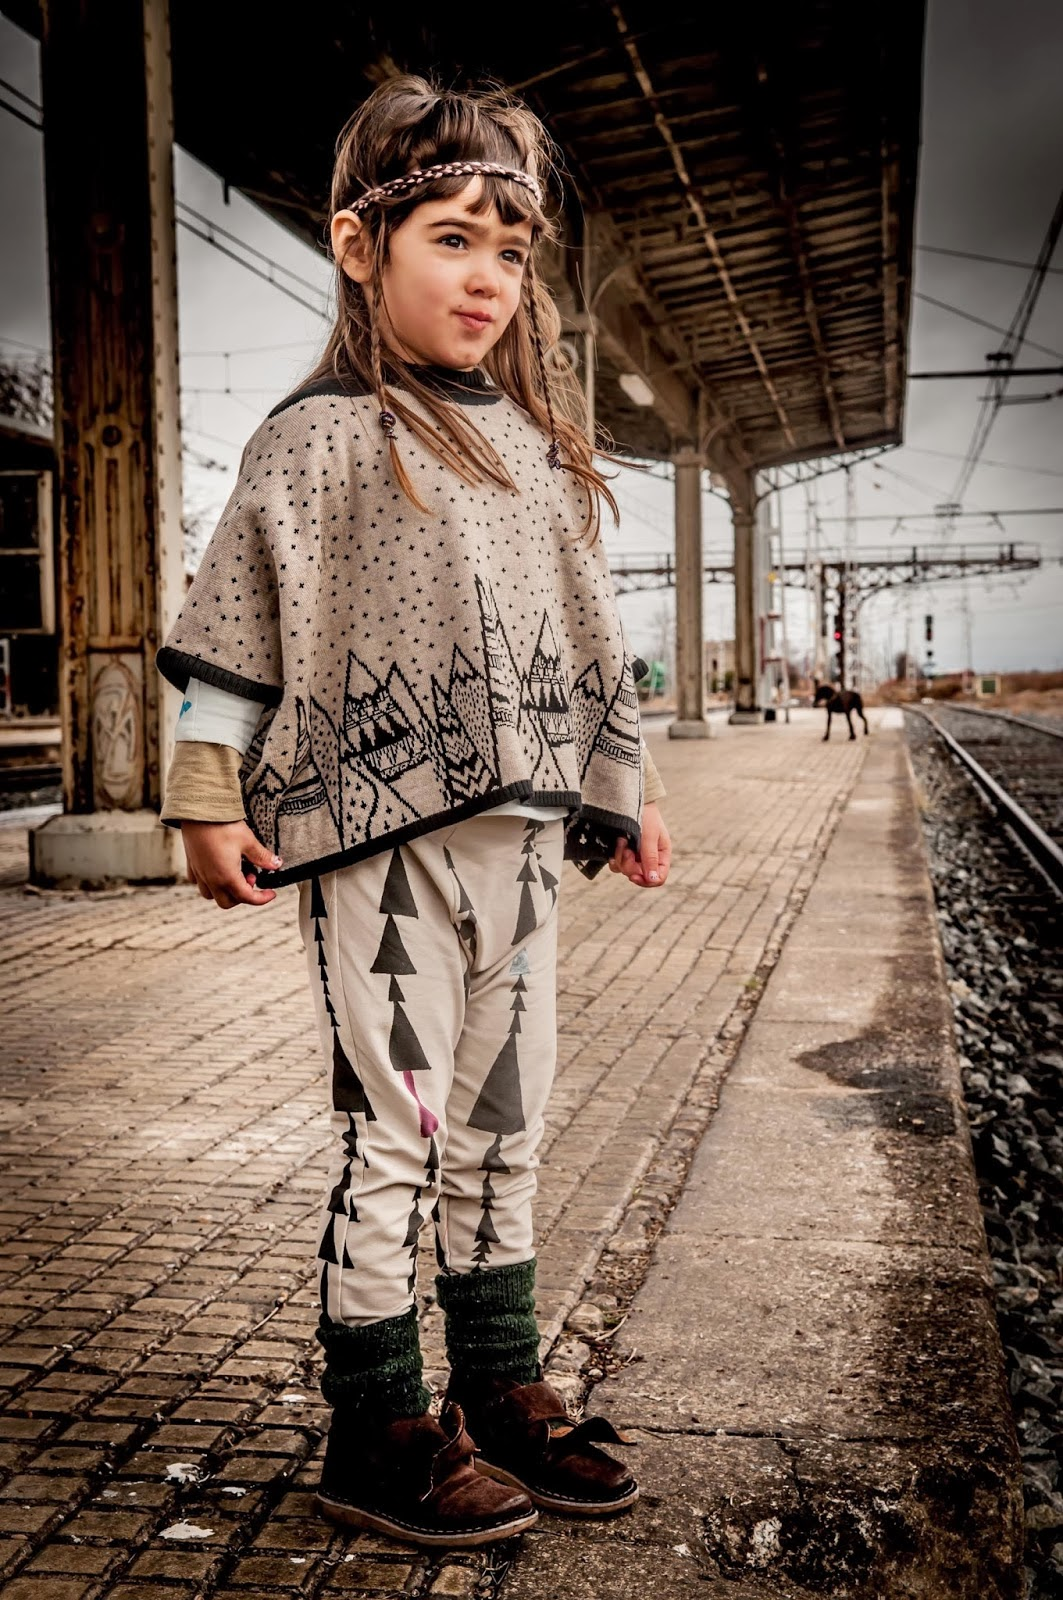 Wool poncho by Perfect Days for Autumn 2014 kidswear collection